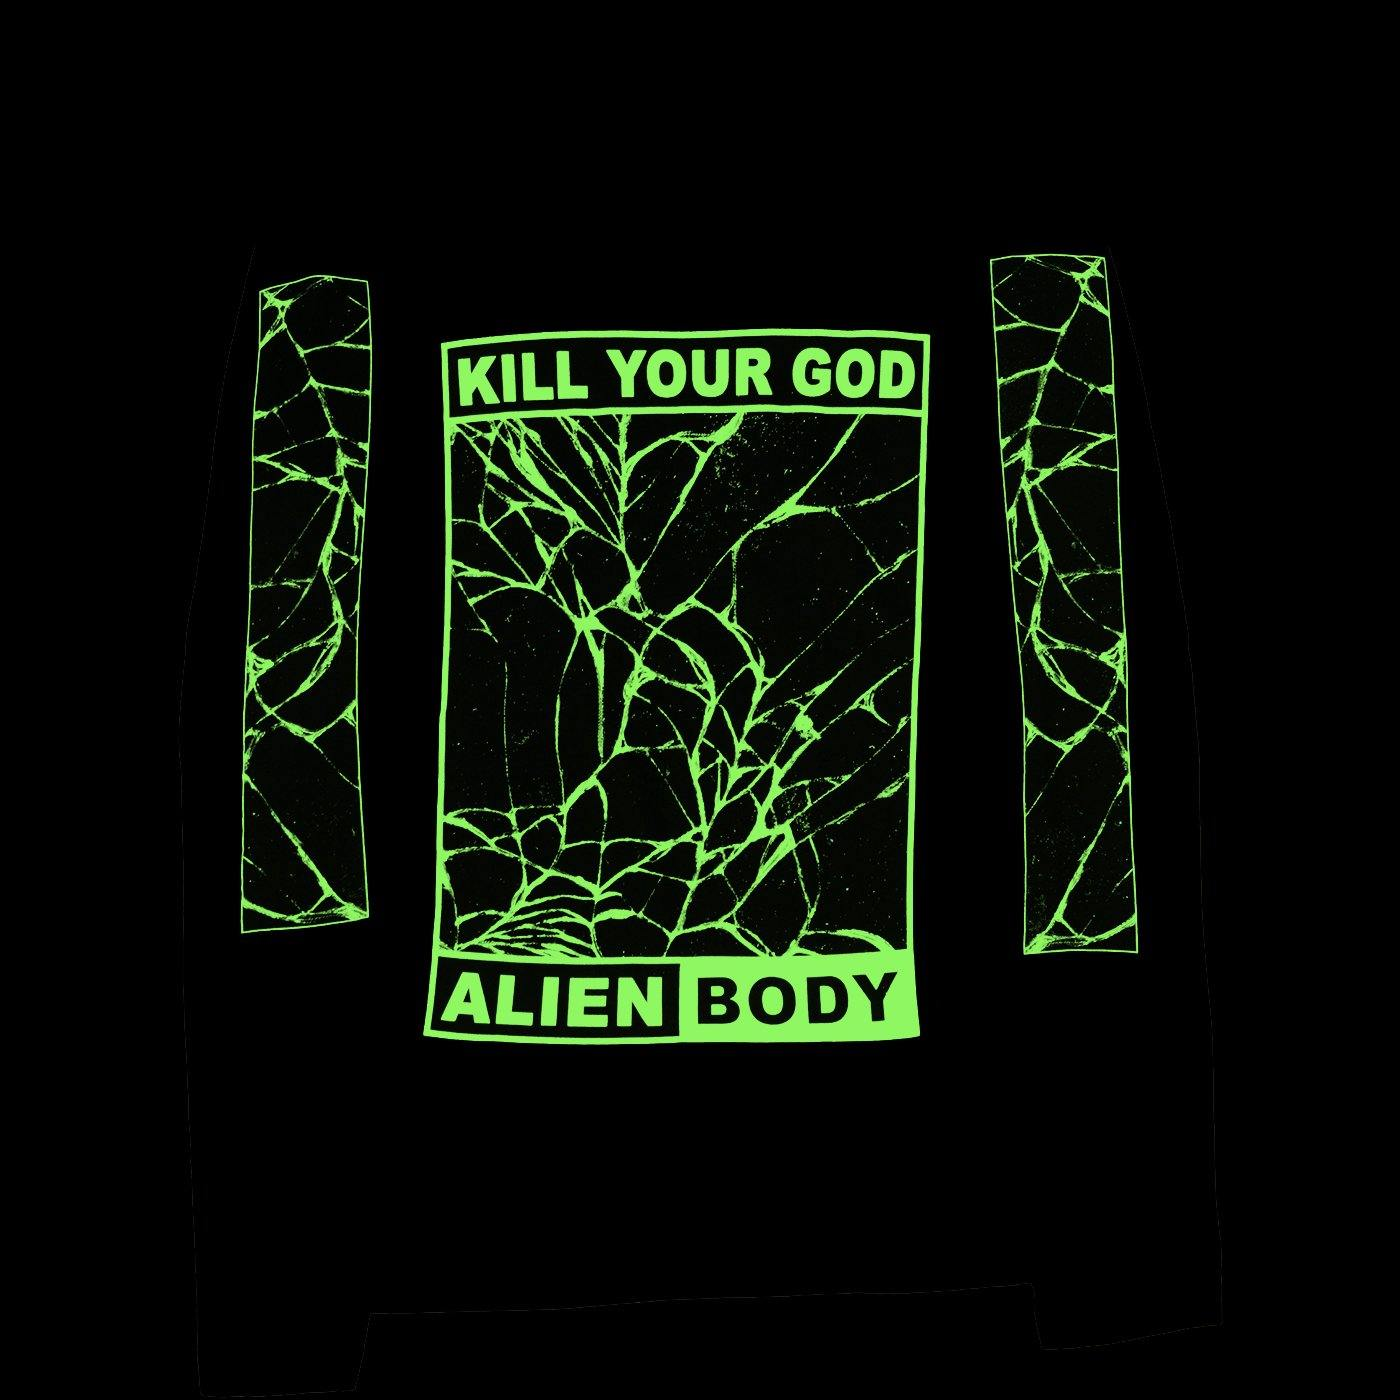 KILL YOUR GOD x ALIEN BODY: SHATTER YOUR REALITY GLOW IN THE DARK L/S SHIRT - Kill Your God